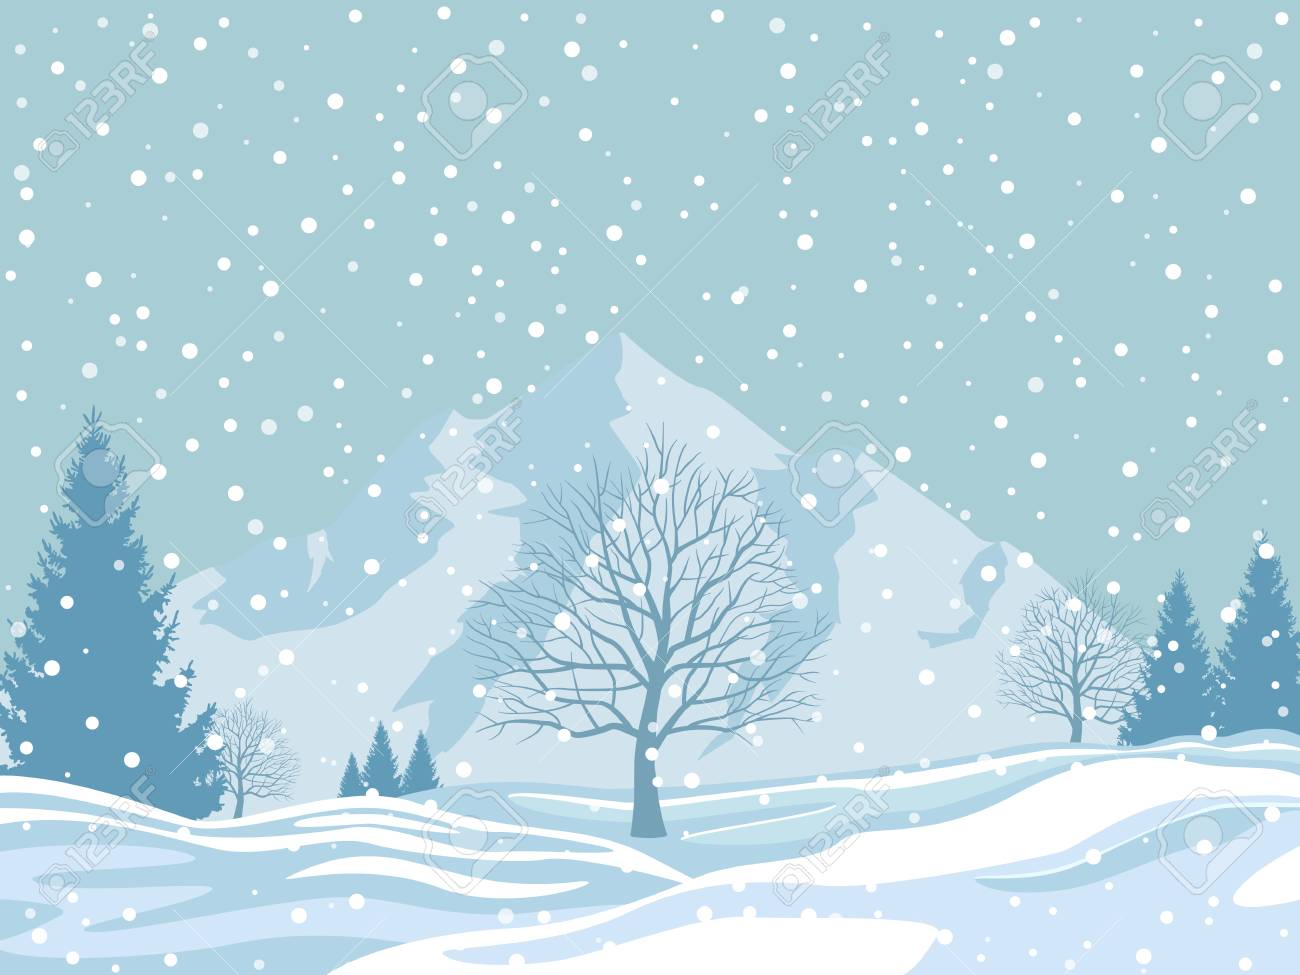 Christmas Illustration.Winter Landscape On Snowy Background Christmas Vector Illustration